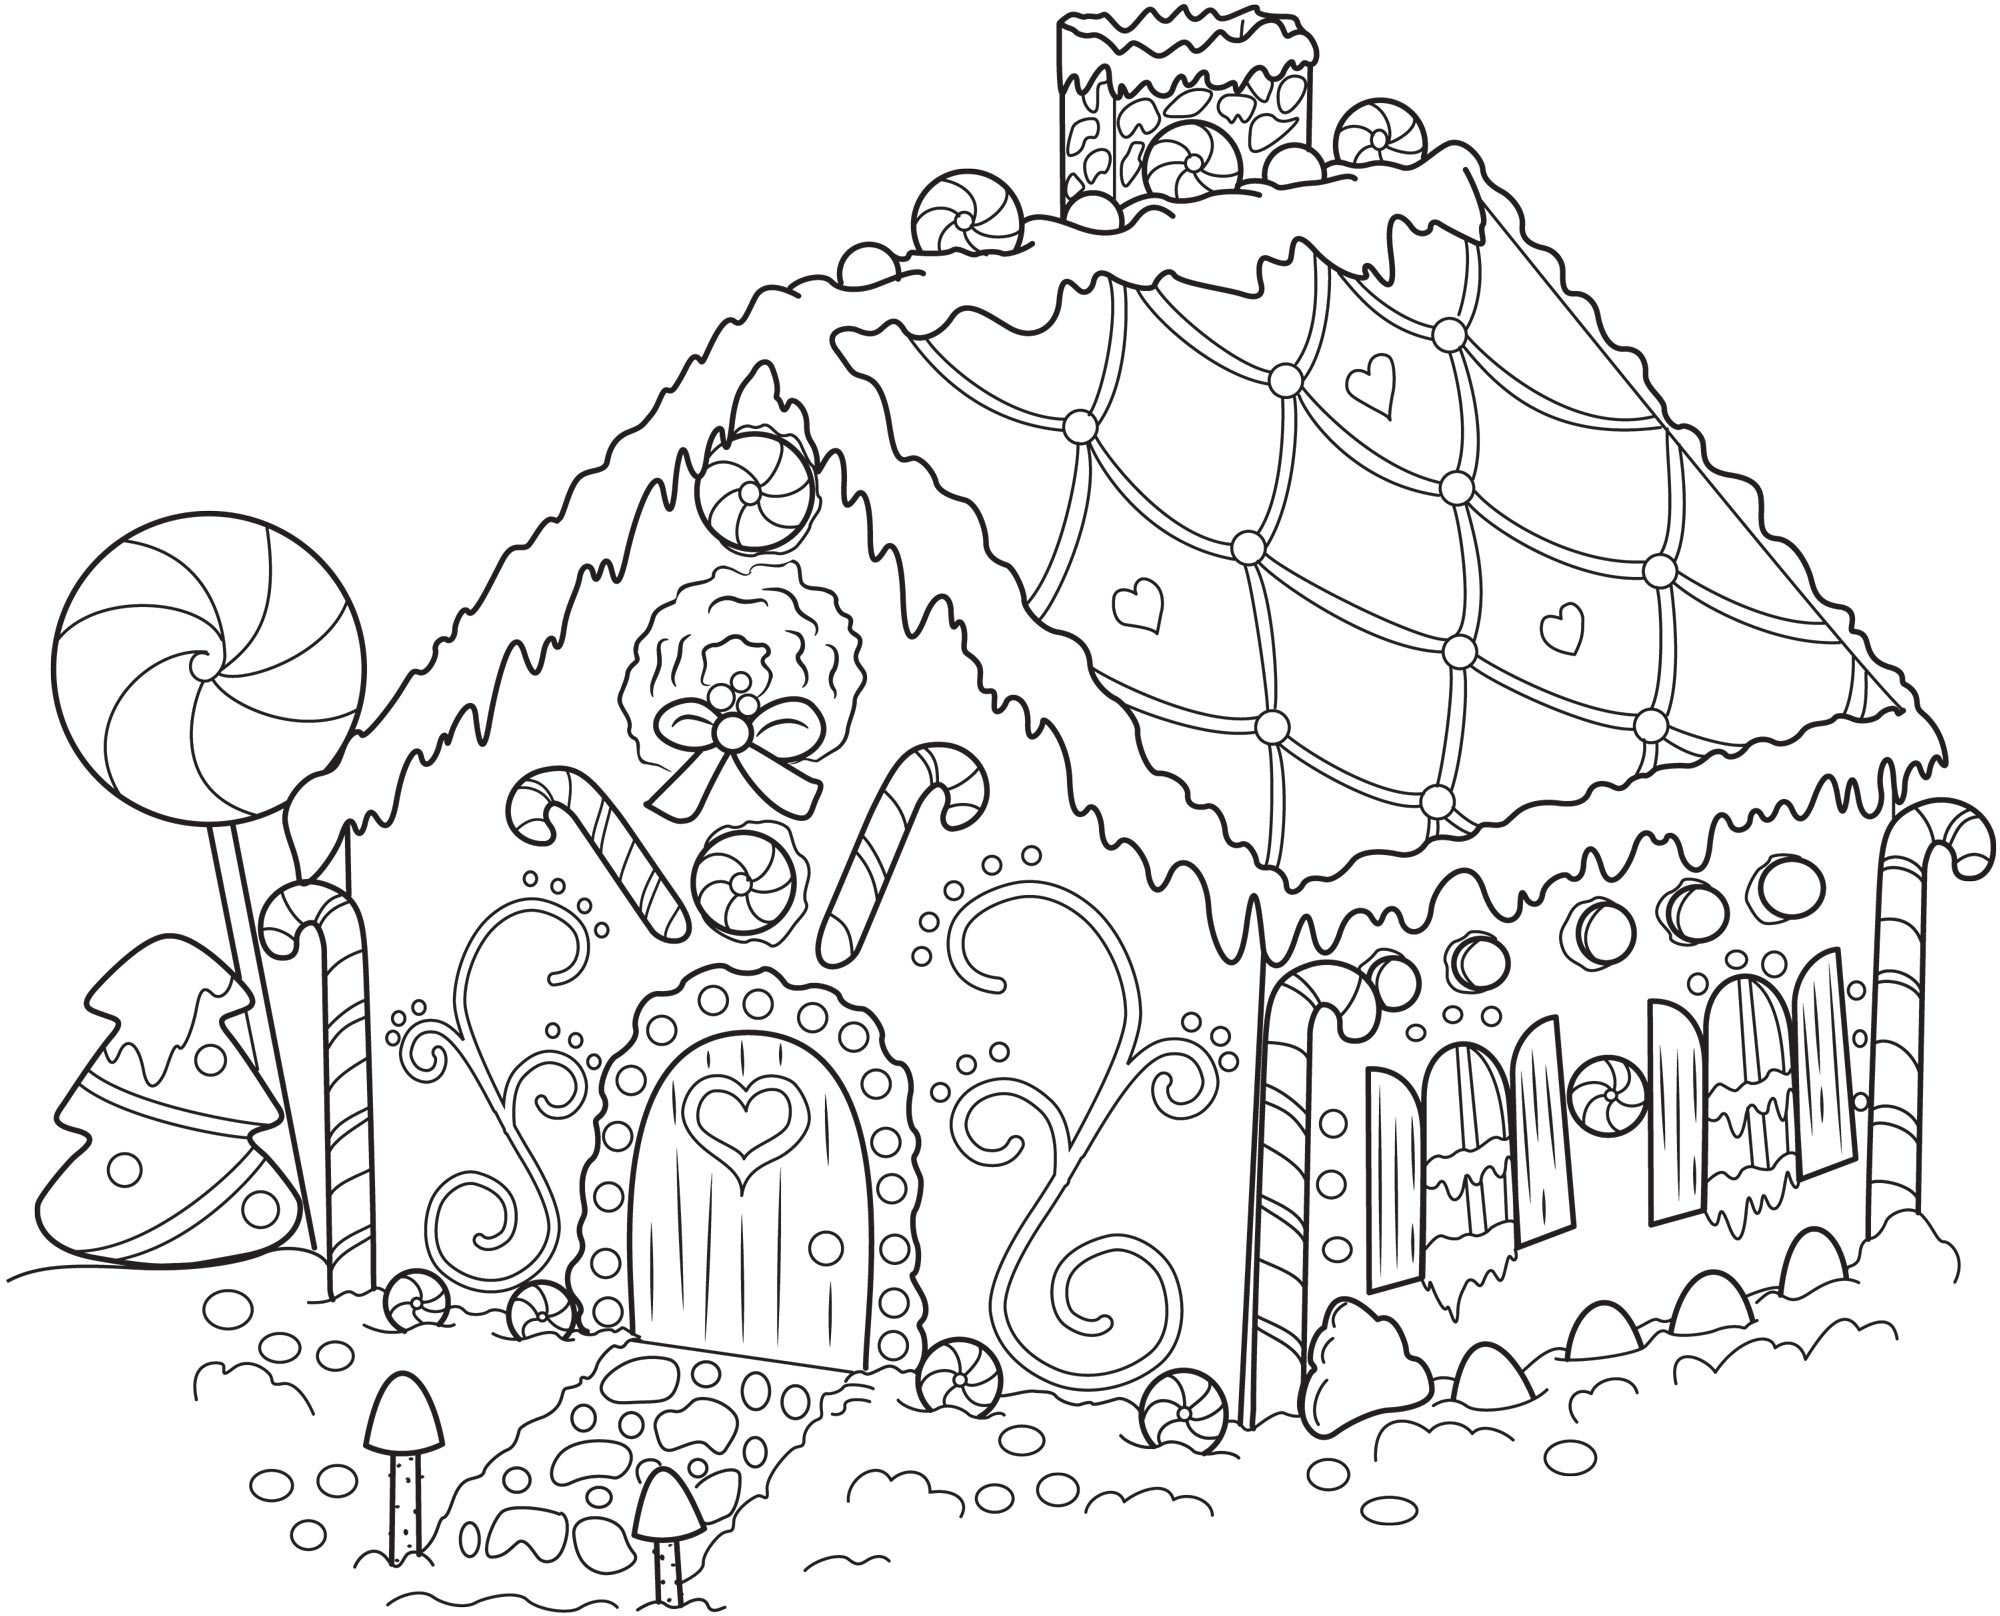 2000x1616 Gingerbread House To Color Gingerbread House Coloring Pages Print